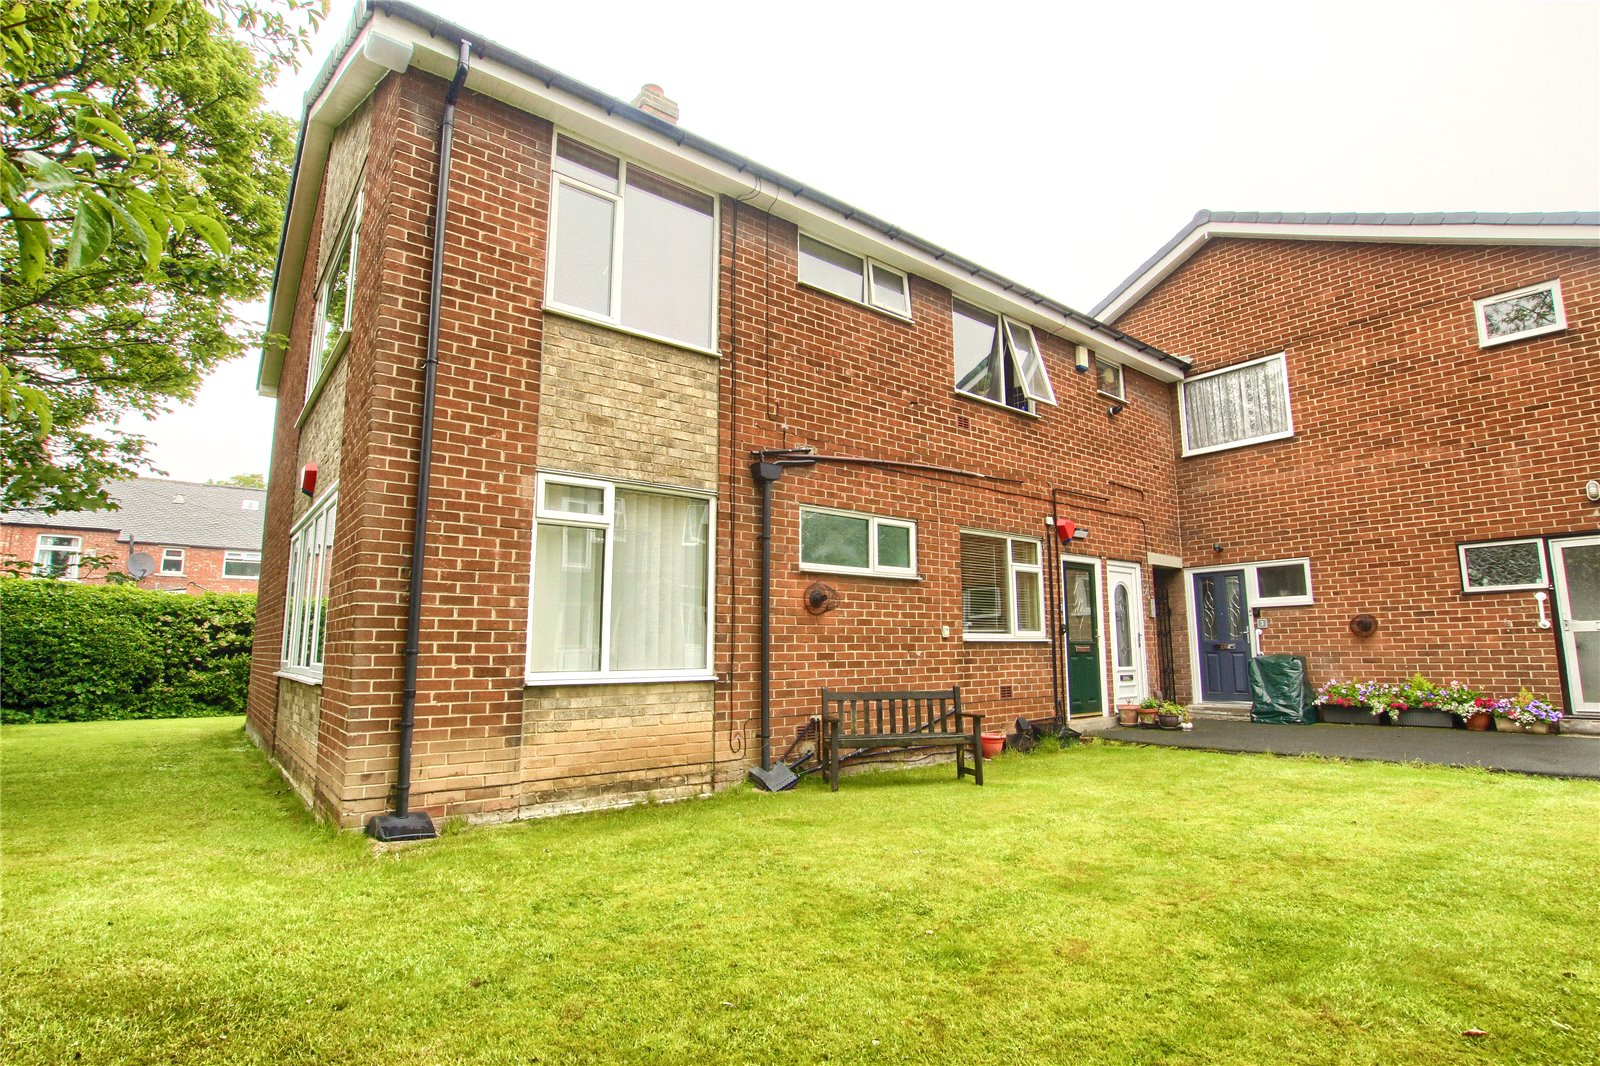 2 bed for sale in Crescent Lodge, The Crescent - Property Image 1